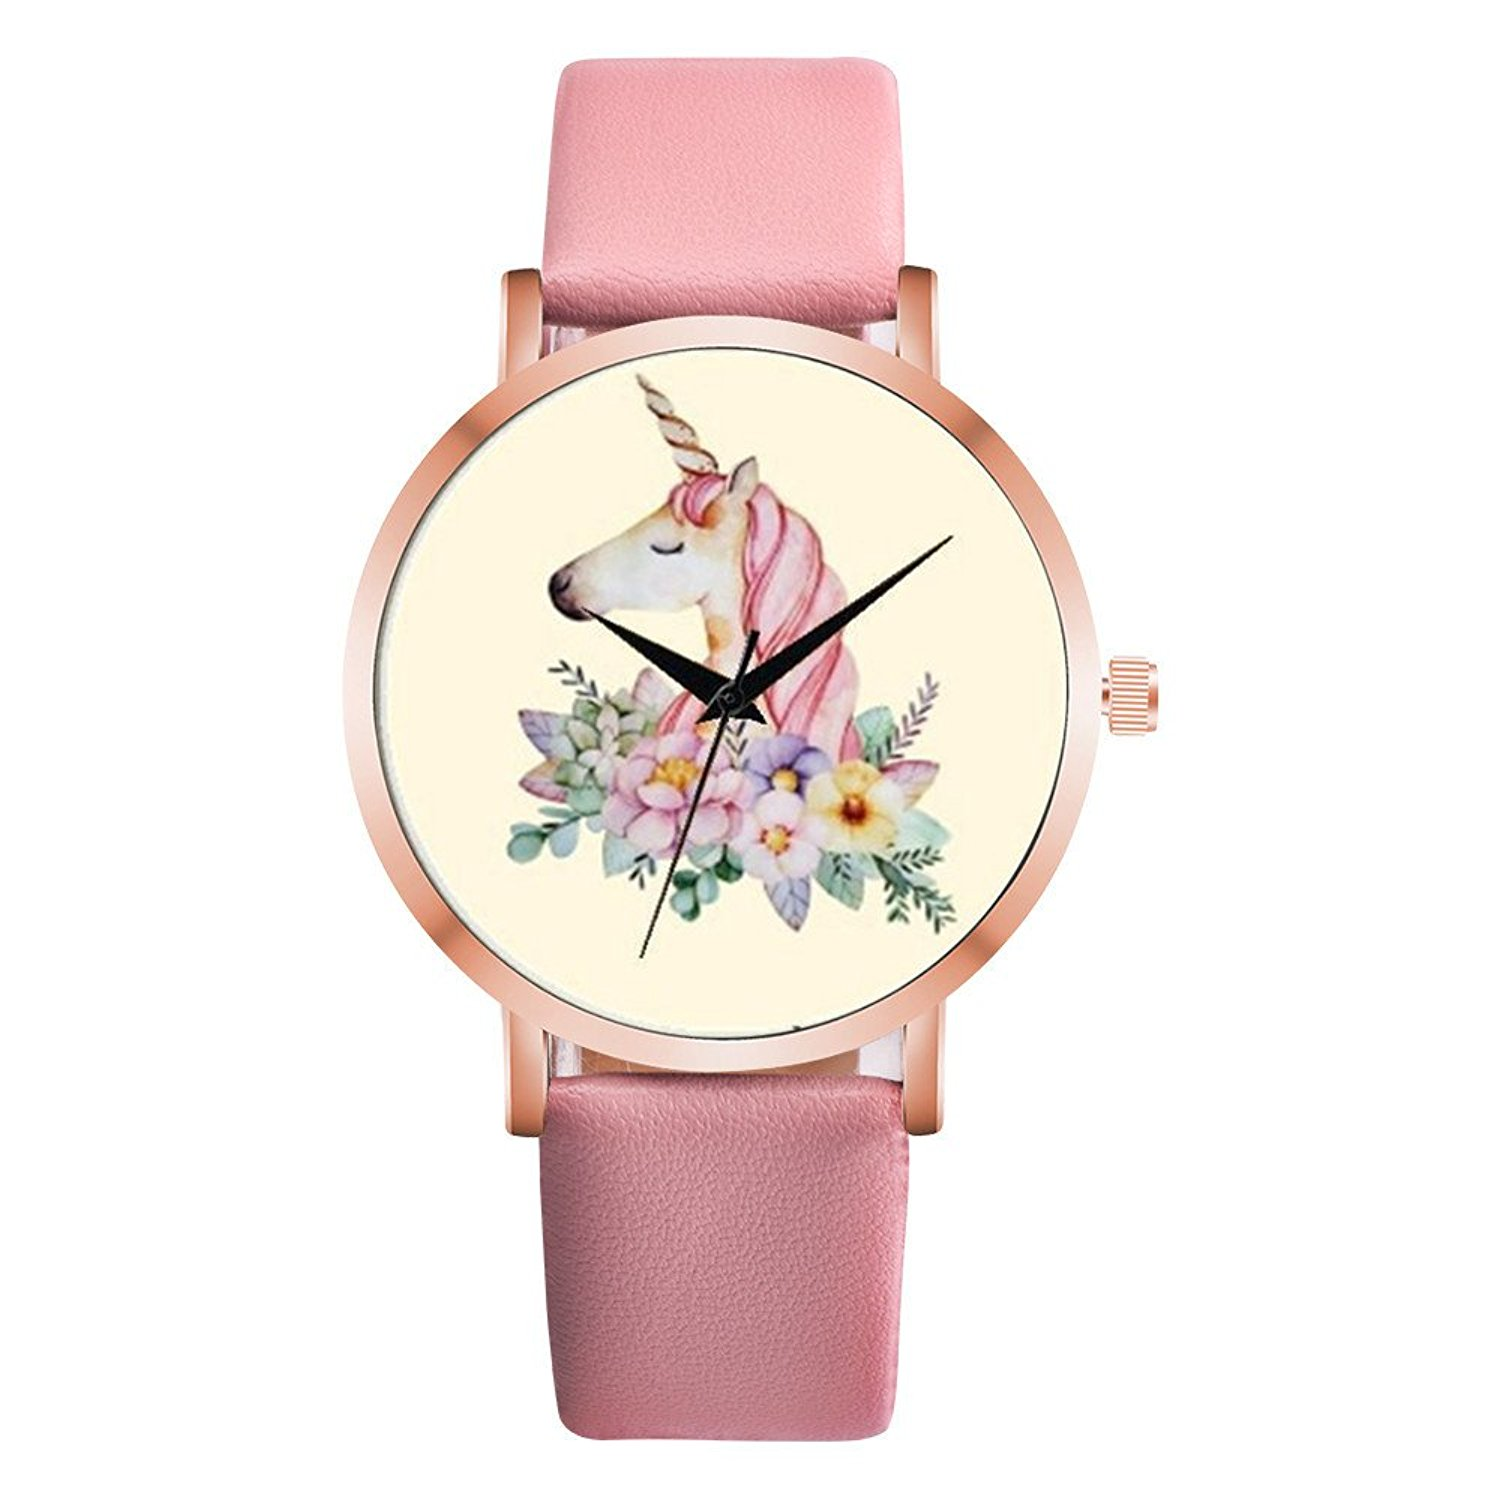 Watches For Women,POTO Quartz Womens Waches Clearance On Sales Fashion Cute Animal Wristwatch Womens Leather Band Analog Alloy Watch For Ladies Teens Girls